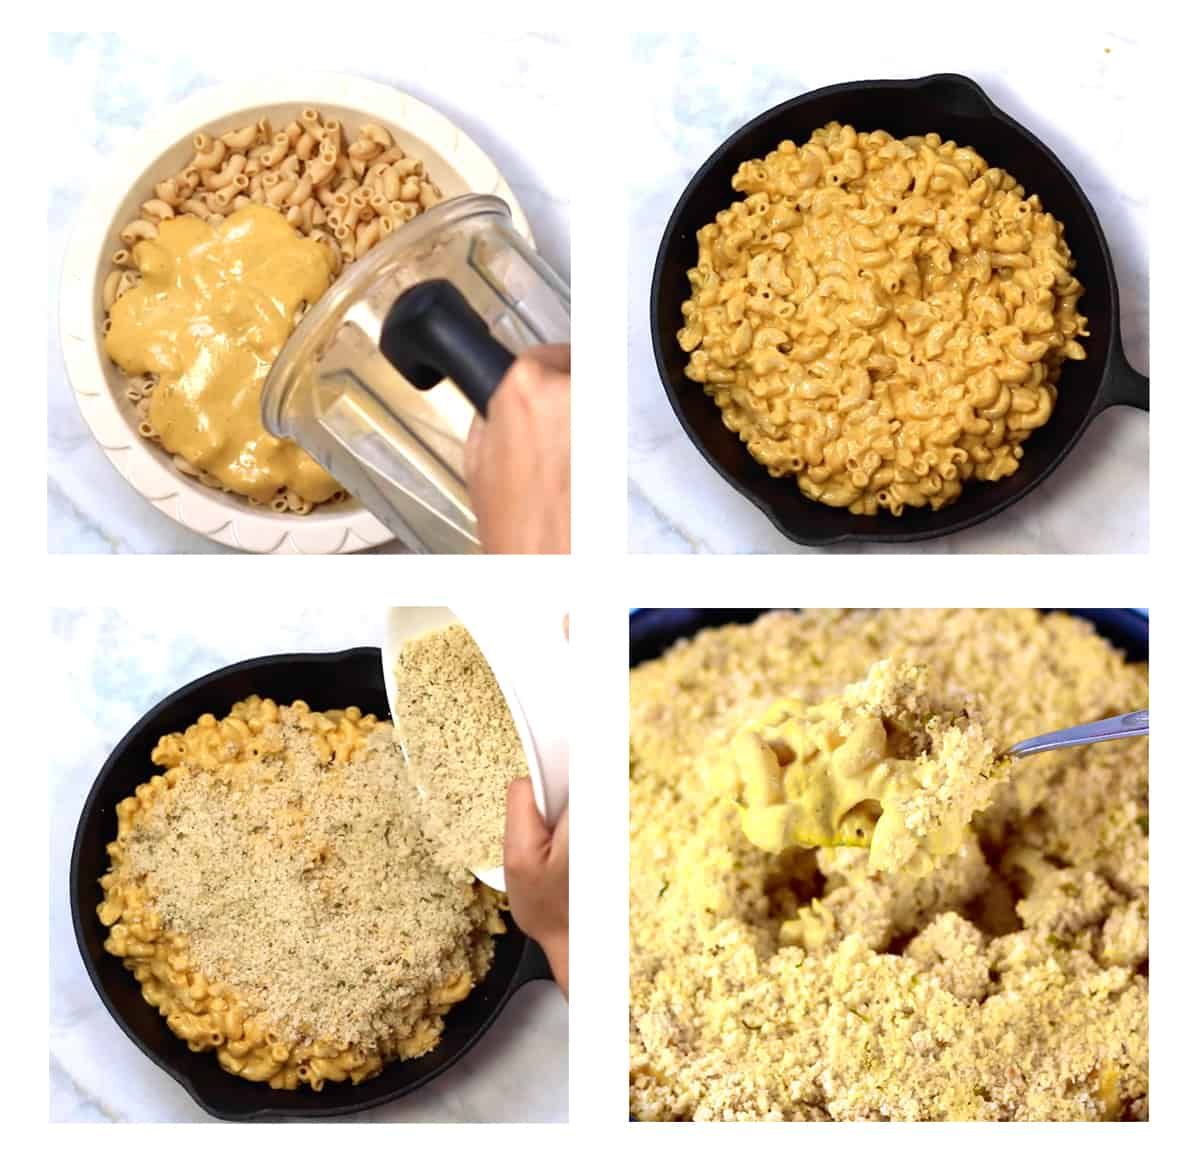 stop by step shots of how to bake the mac and cheese